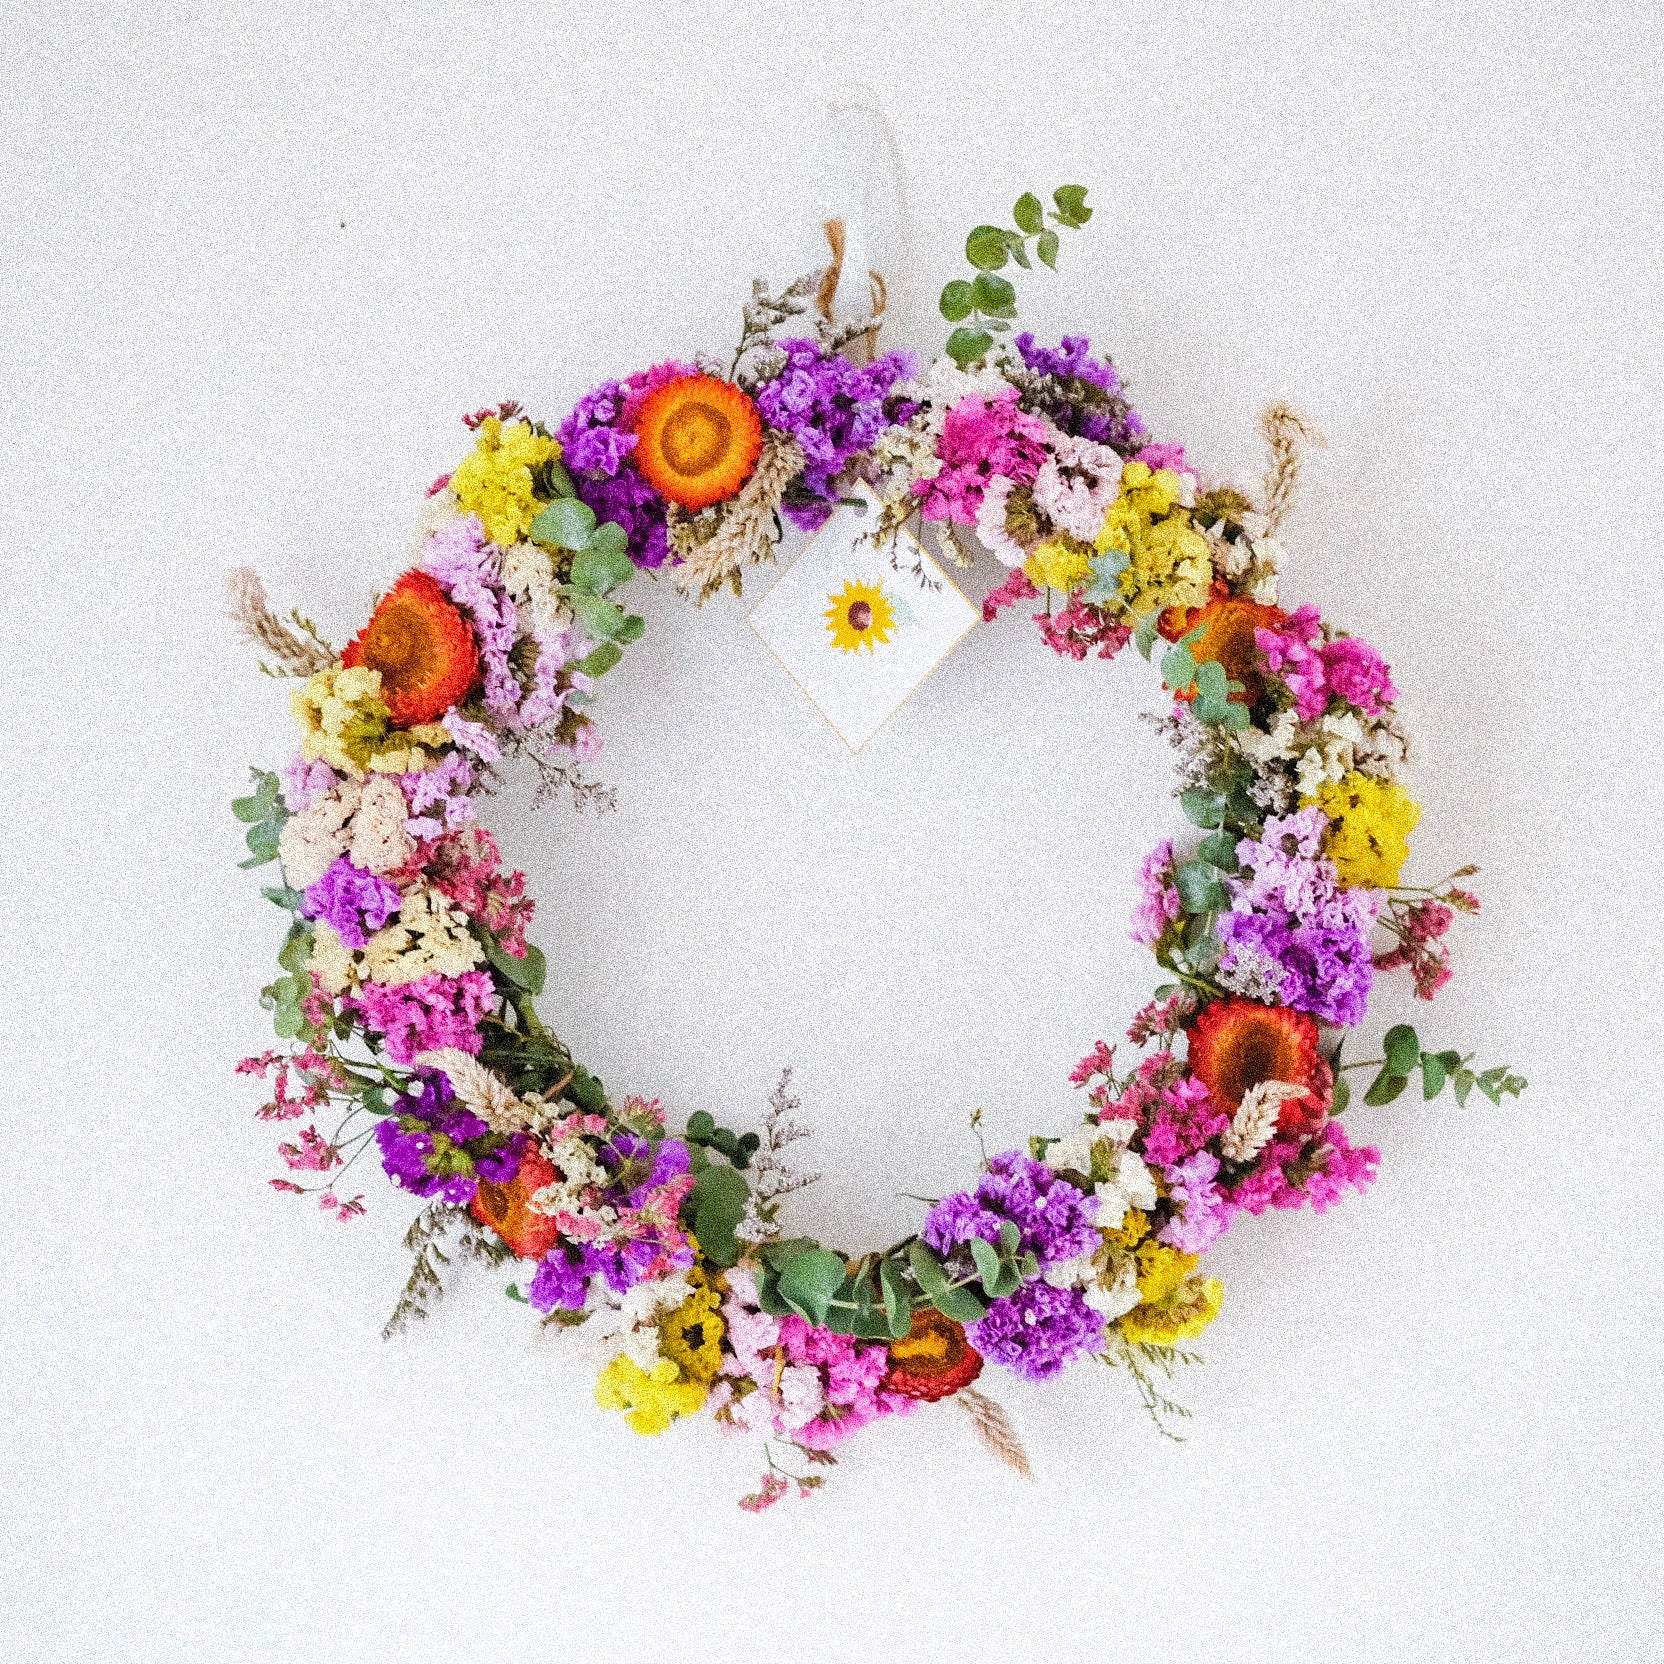 bespoke dried flower wreath by sunny label